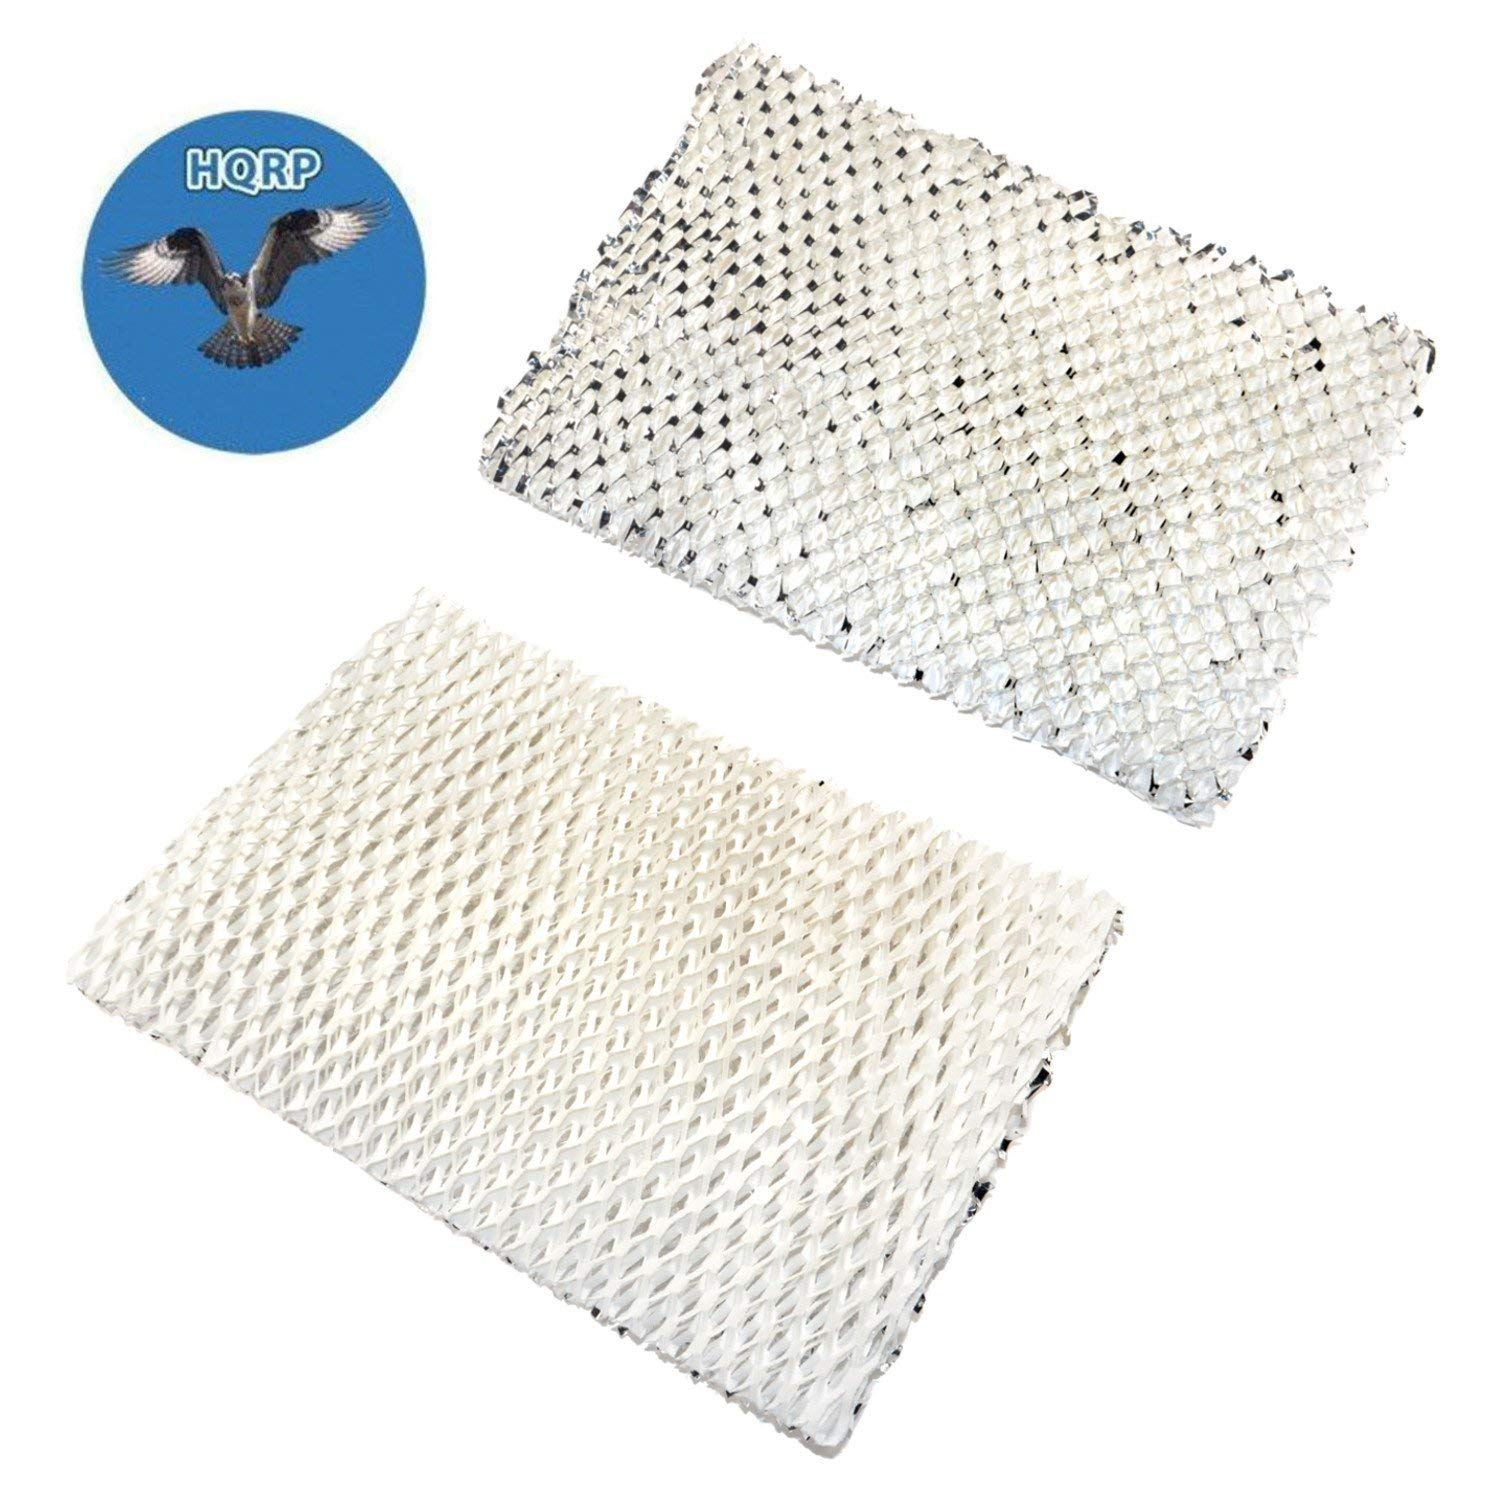 HQRP 2-pack Wick Filter for WEB Humidifying Floor Vent Register plus HQRP Coaster